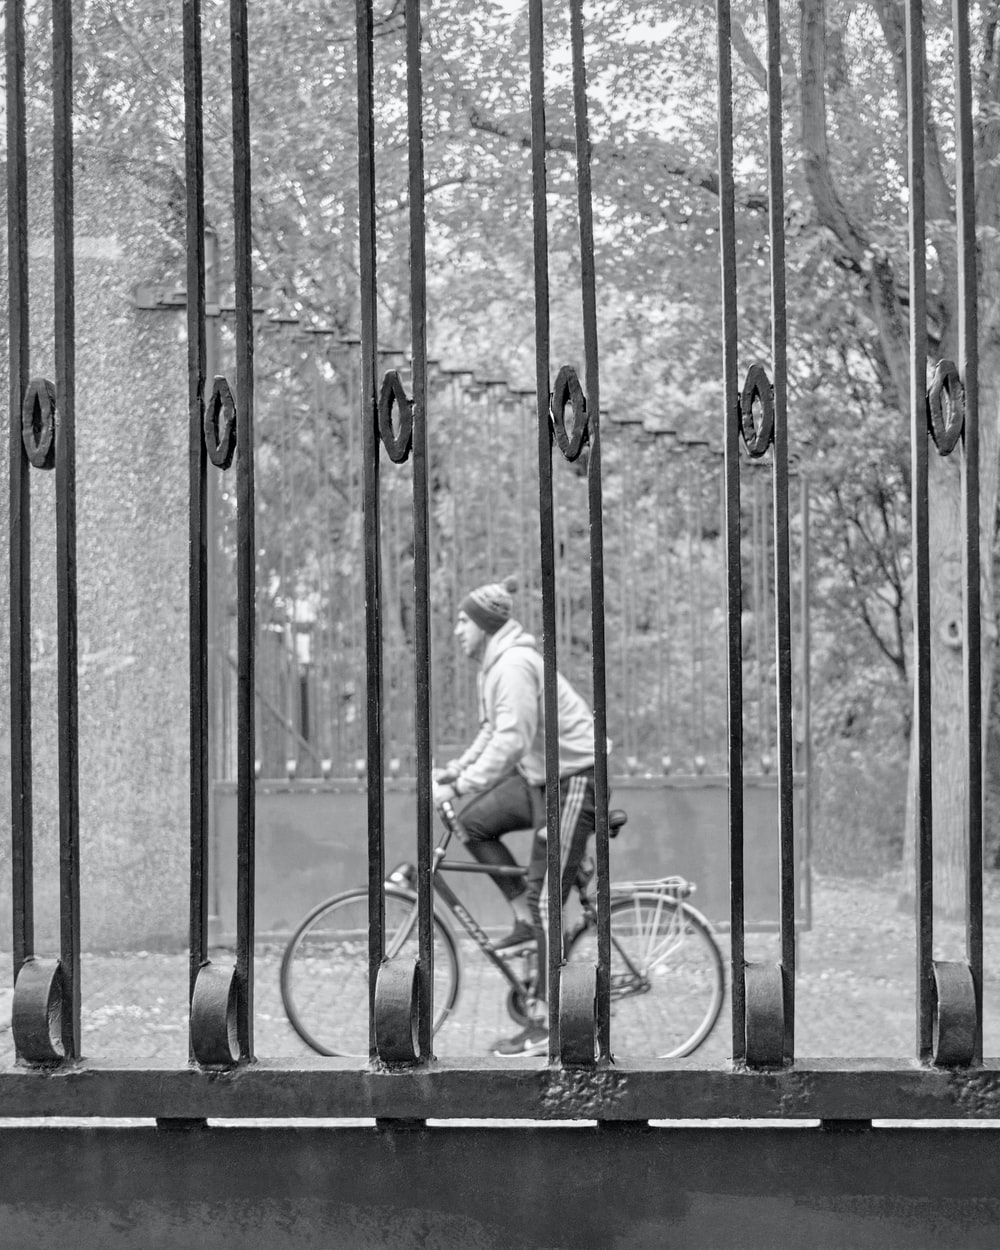 grayscale photo of girl riding bicycle